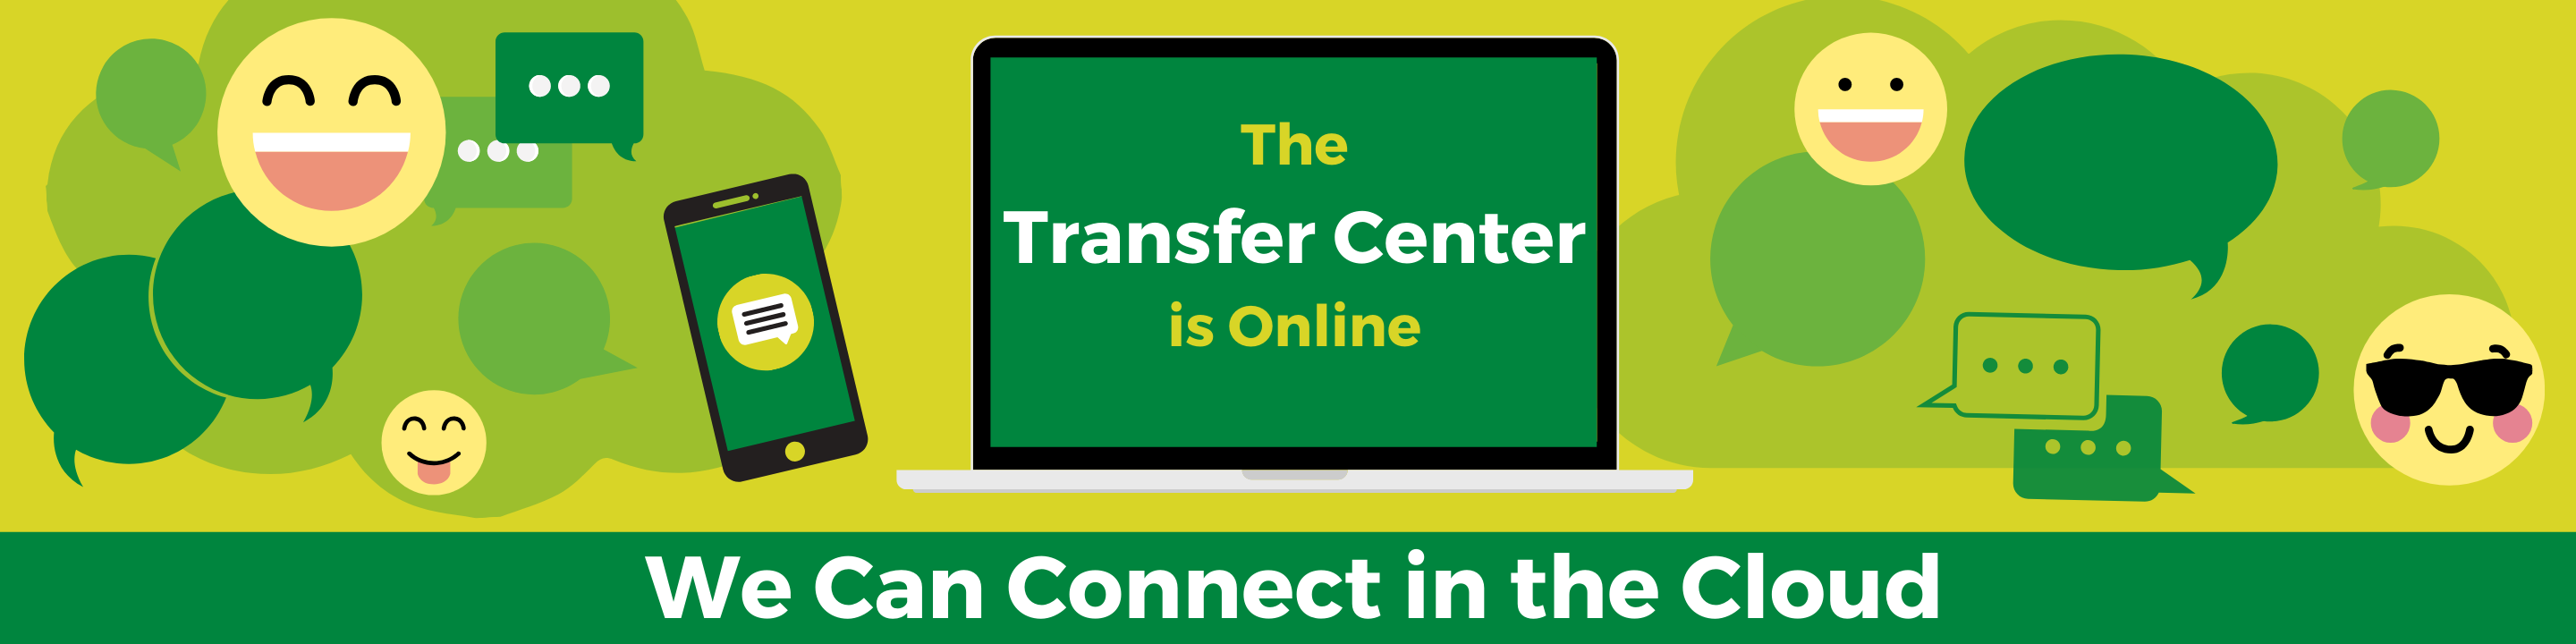 Slide 3: The Transfer Center is online. We can connect in the cloud.